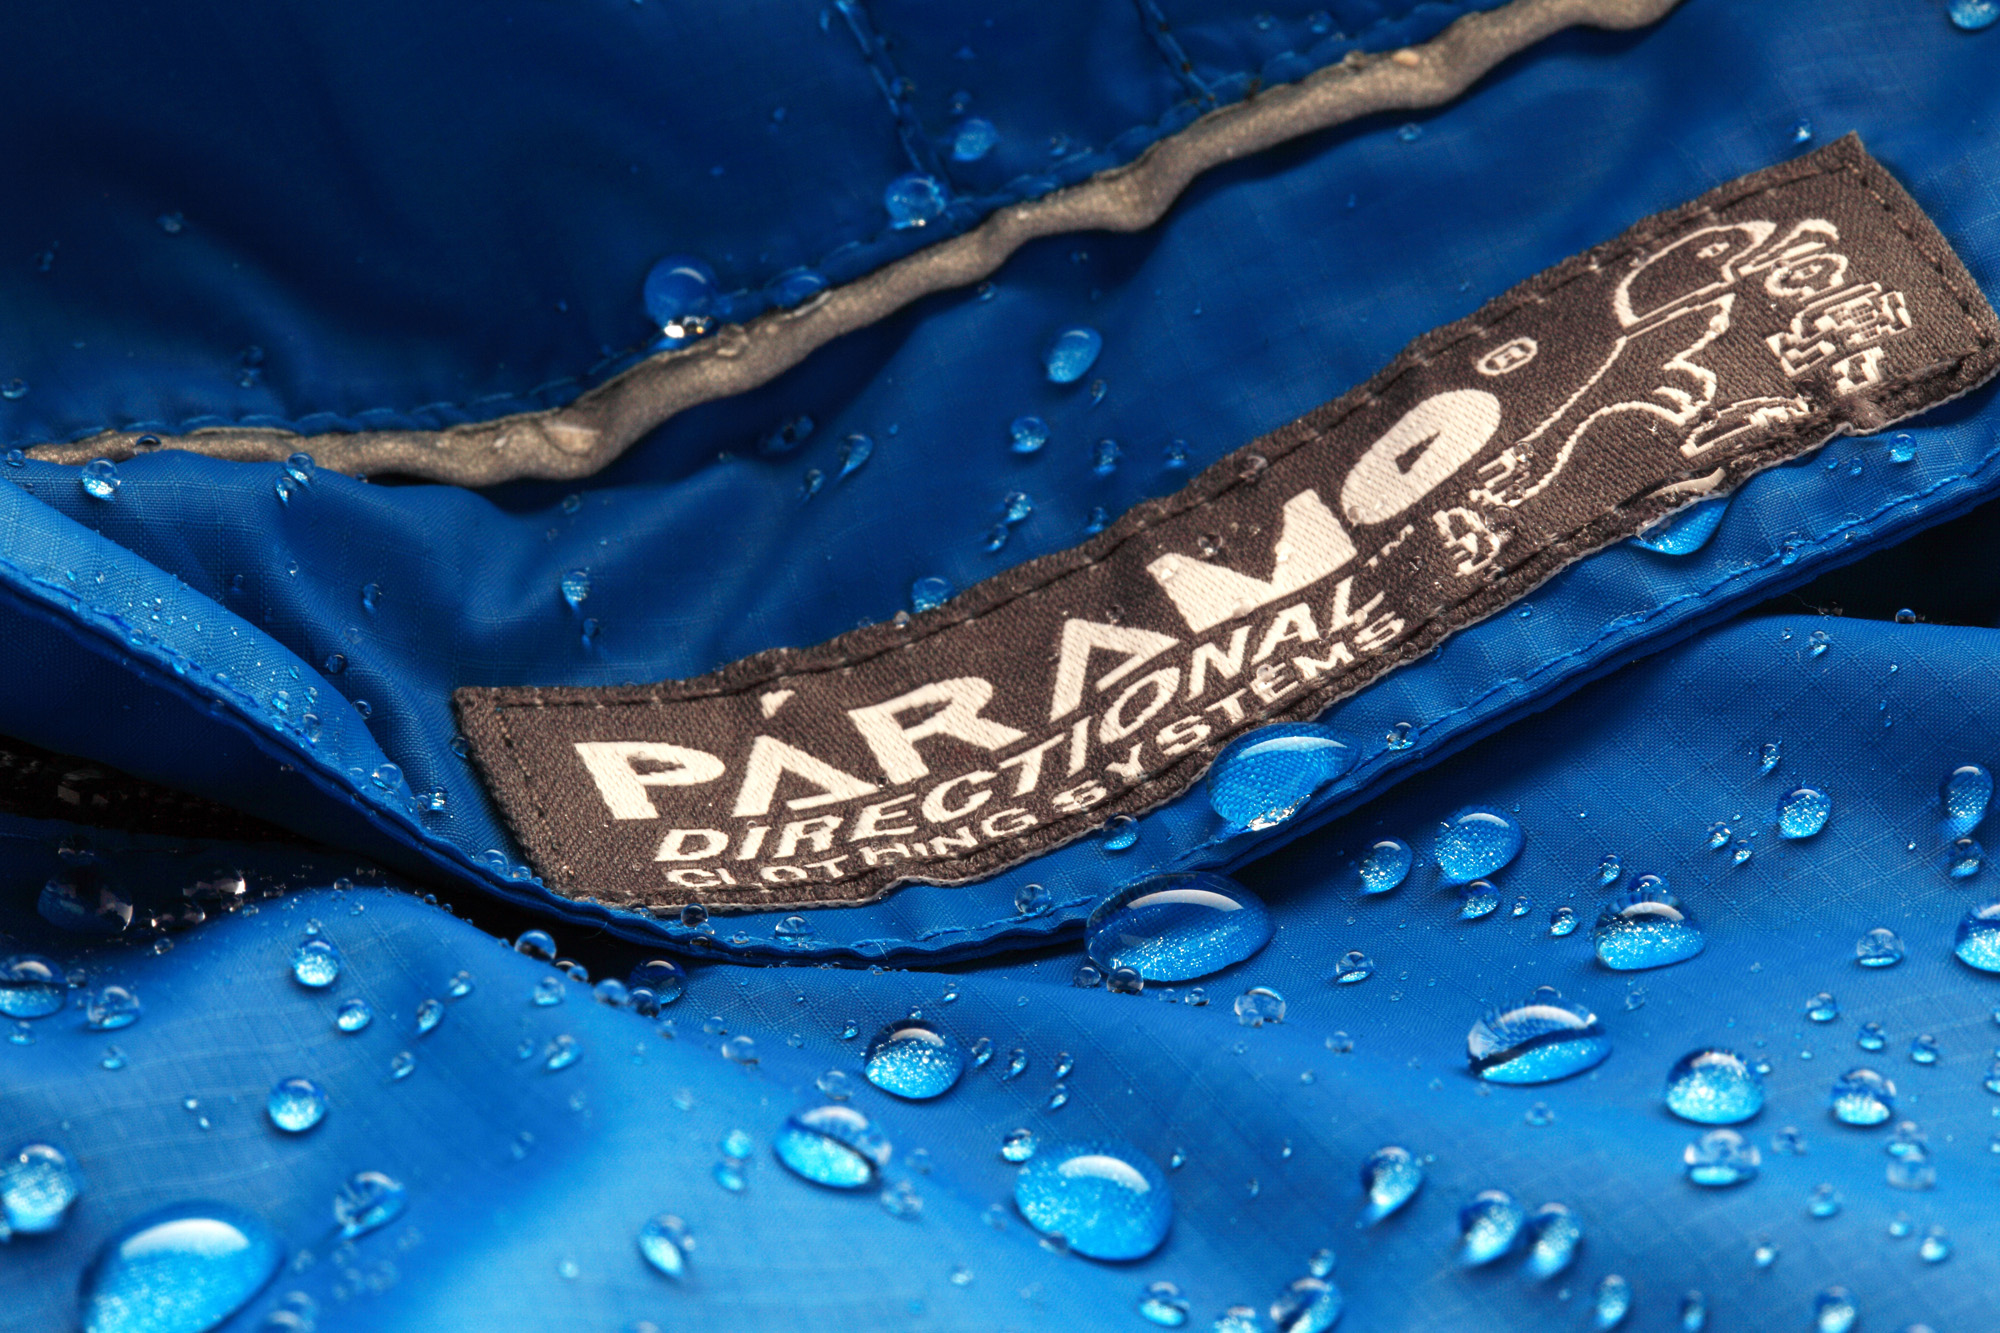 Páramo garments use the Nikwax Analogy waterproof fabric system